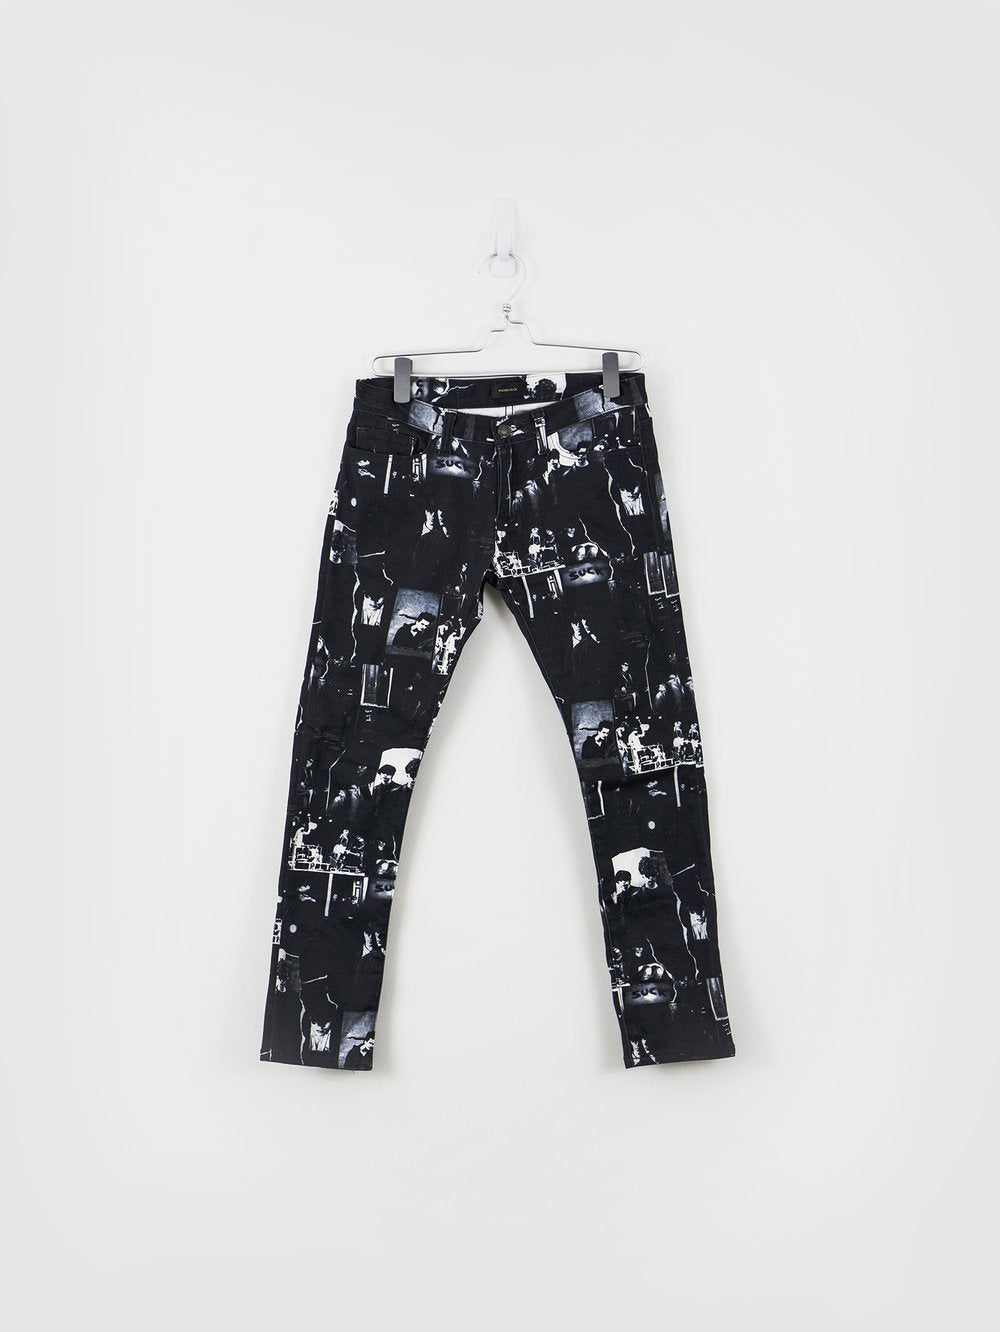 Undercover SS14 JAMC Suck All-Over Print Cropped Jeans